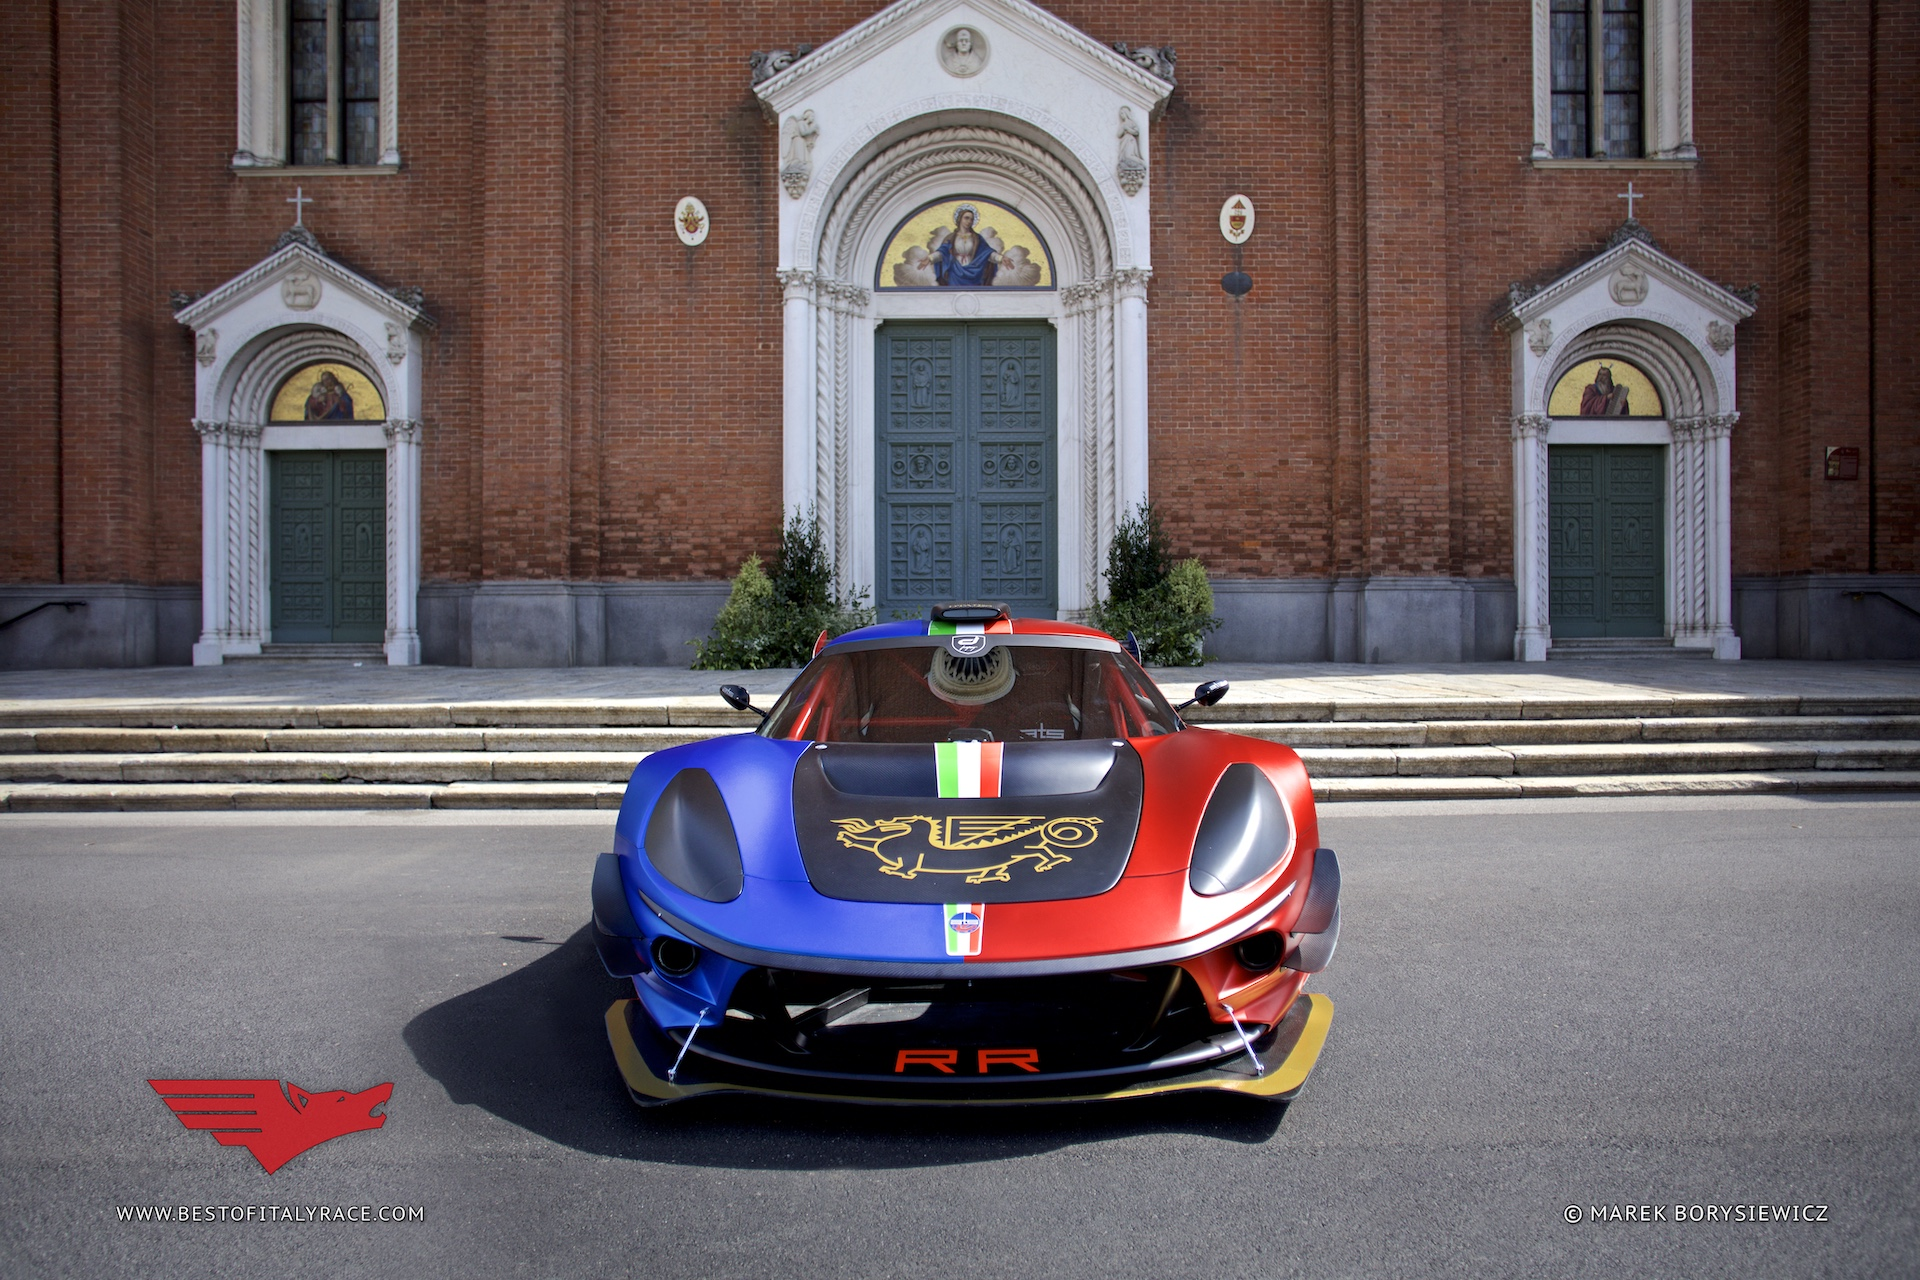 Best_Of_Italy_Race_2019_ATS_RR_photo_by_Marek_Borysiewicz__MB1_8888